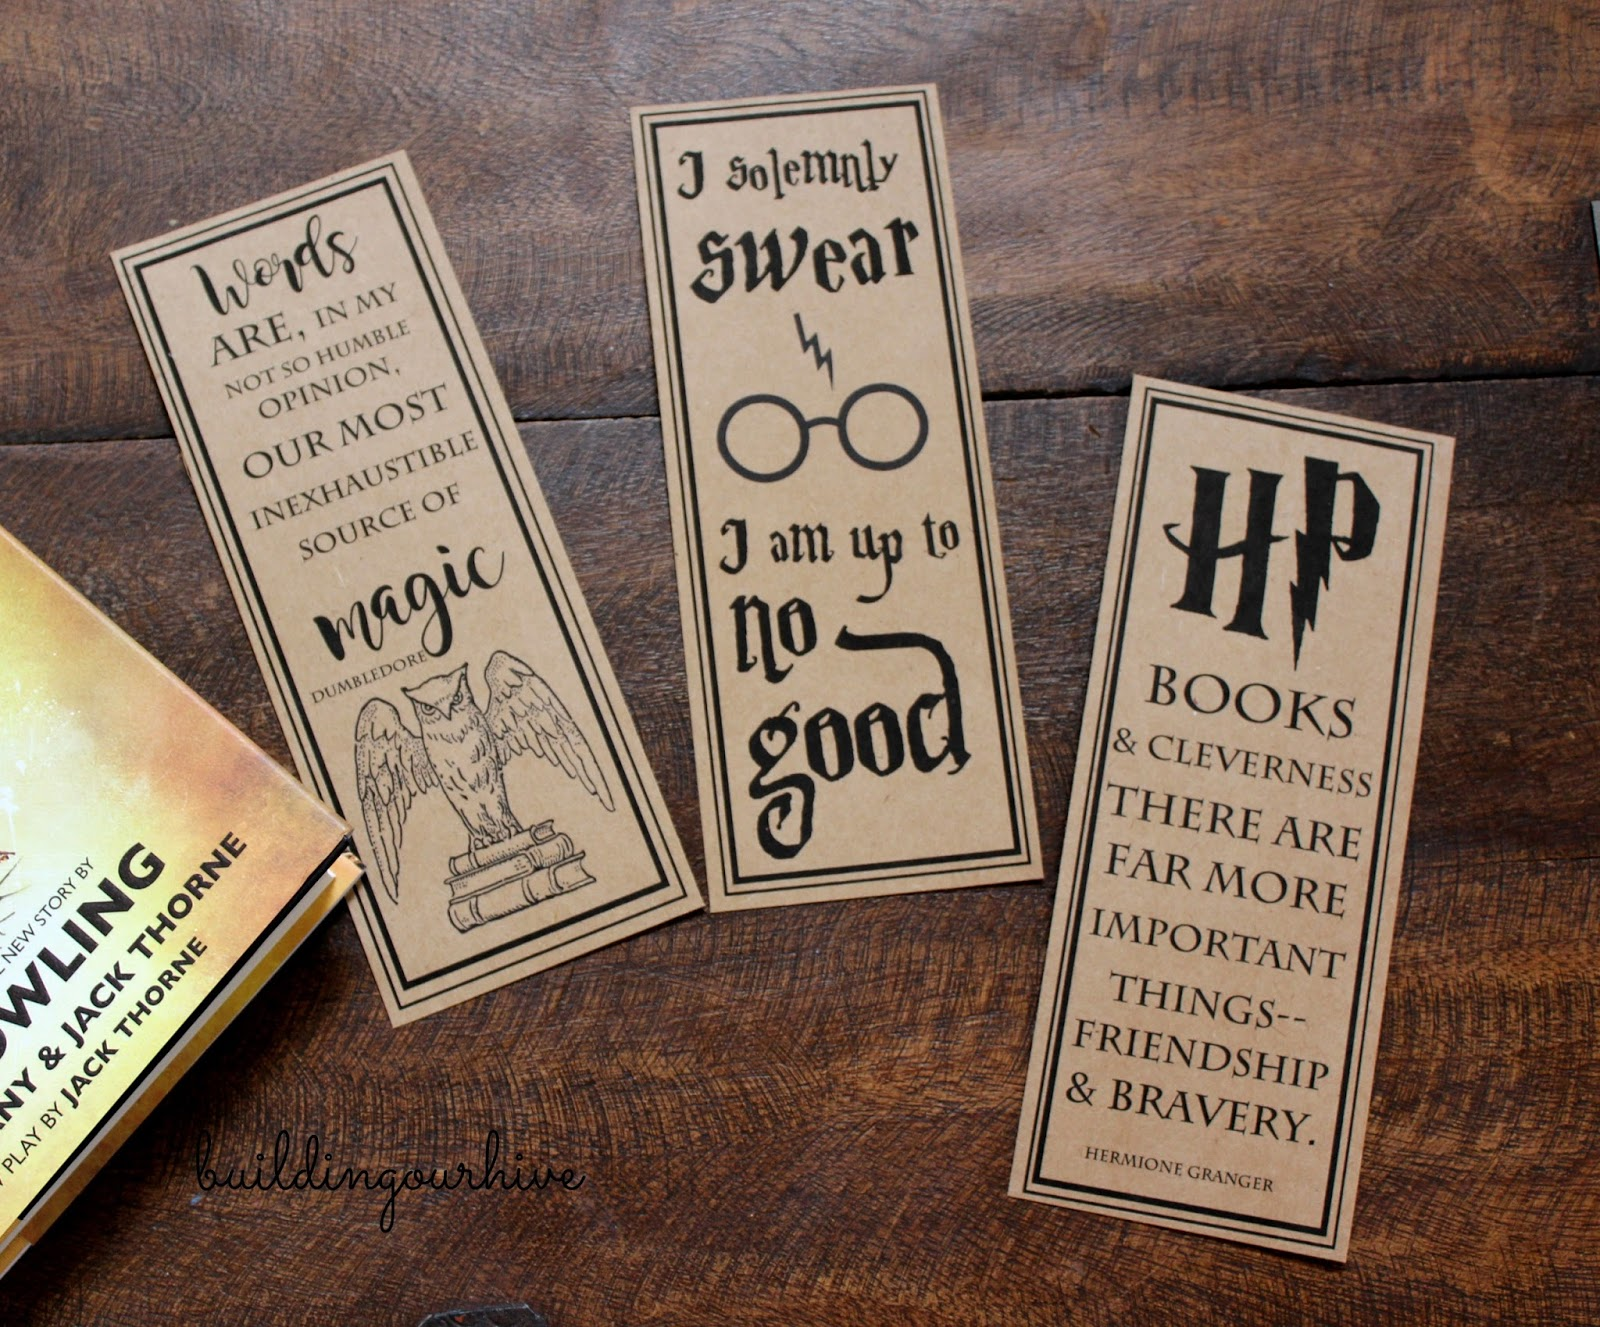 photograph about Free Printable Harry Potter Bookmarks named Harry Potter Coloring E-book Mark Printable Cost-free